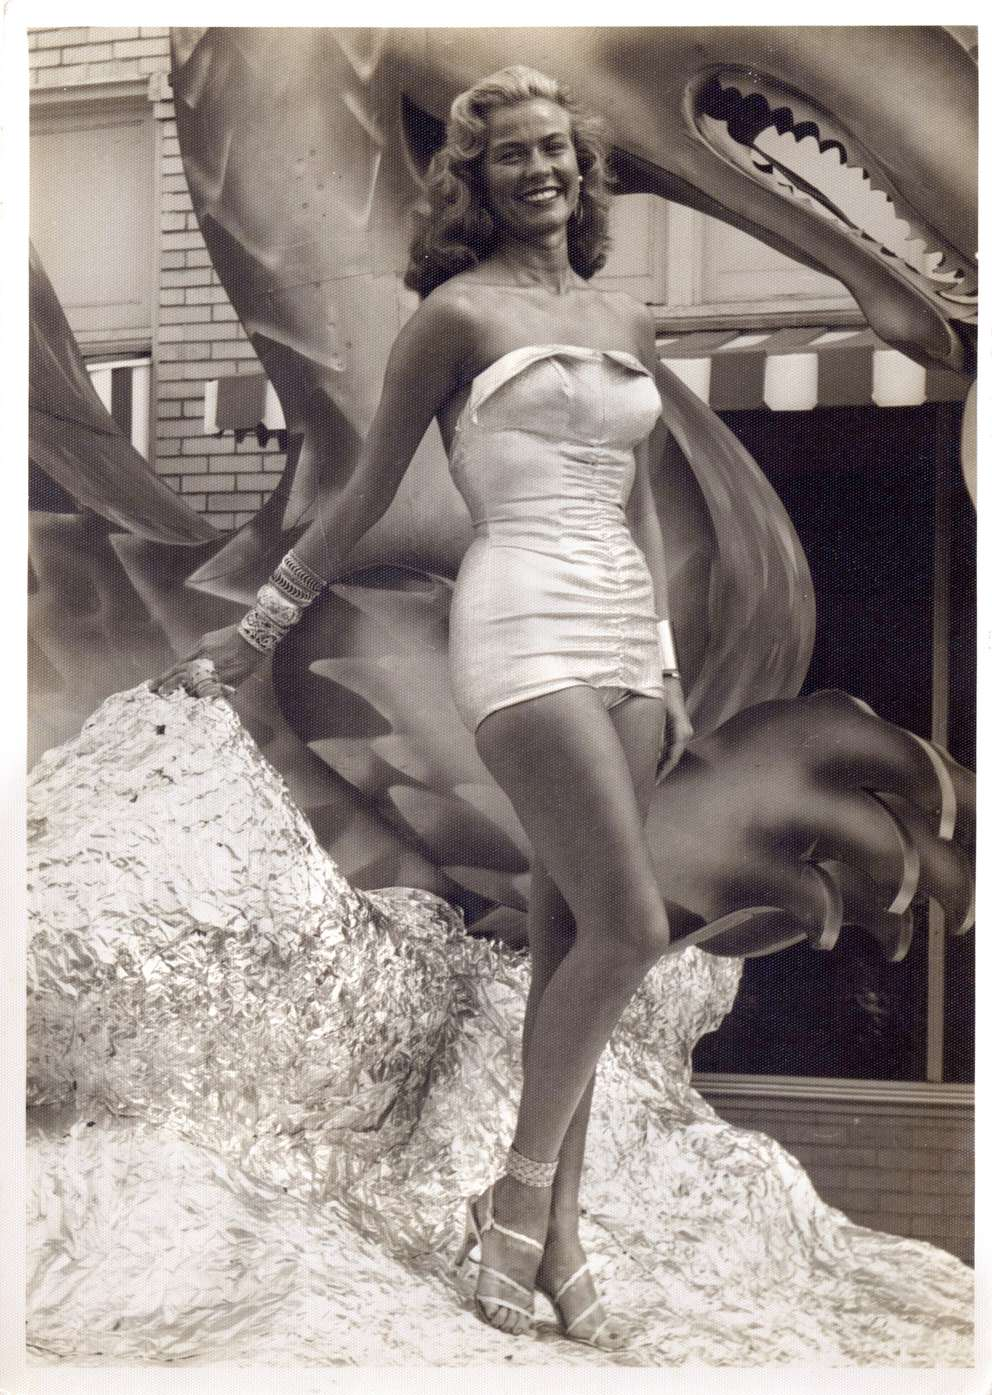 Joanne Ross stands by a Gasparilla dragon float in 1951. She was known for her role as the Gasparilla Parade's Mystery Blonde during the 1950's and 60's as the Gasparilla Parade's Mystery Blond. [Photo provided by Joanne Ross | Times archives]